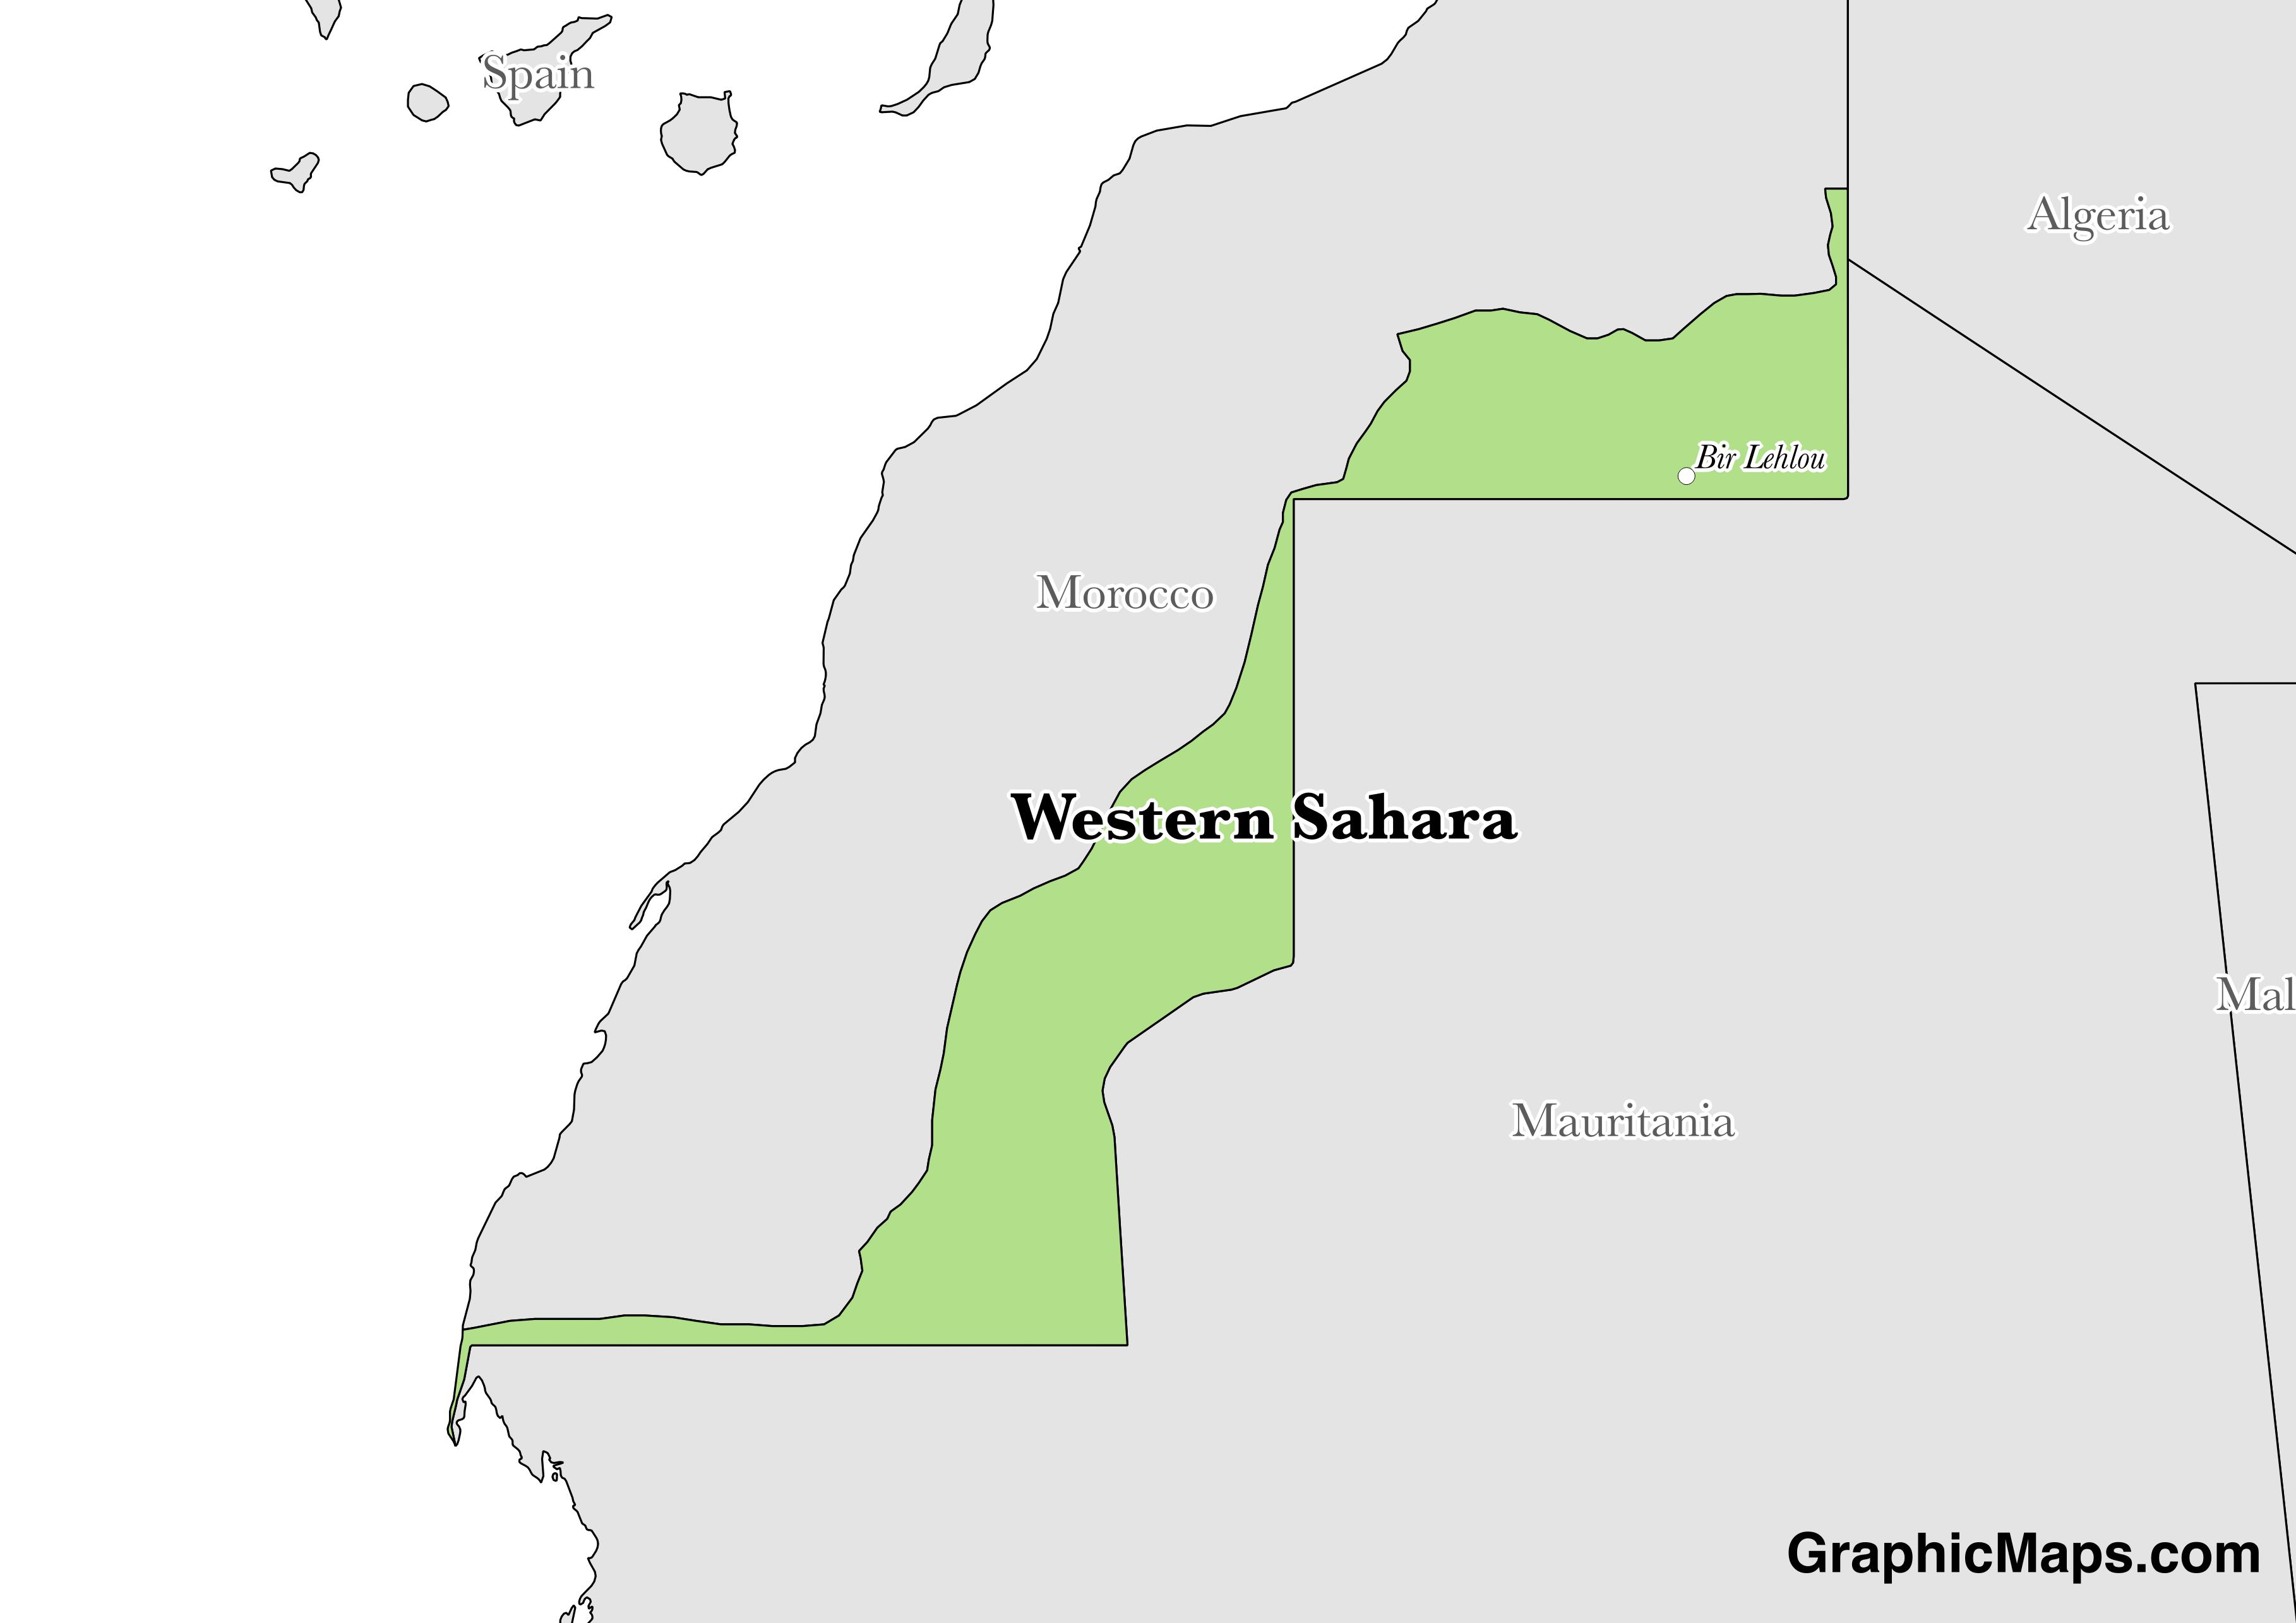 Map showing the location of Western Sahara